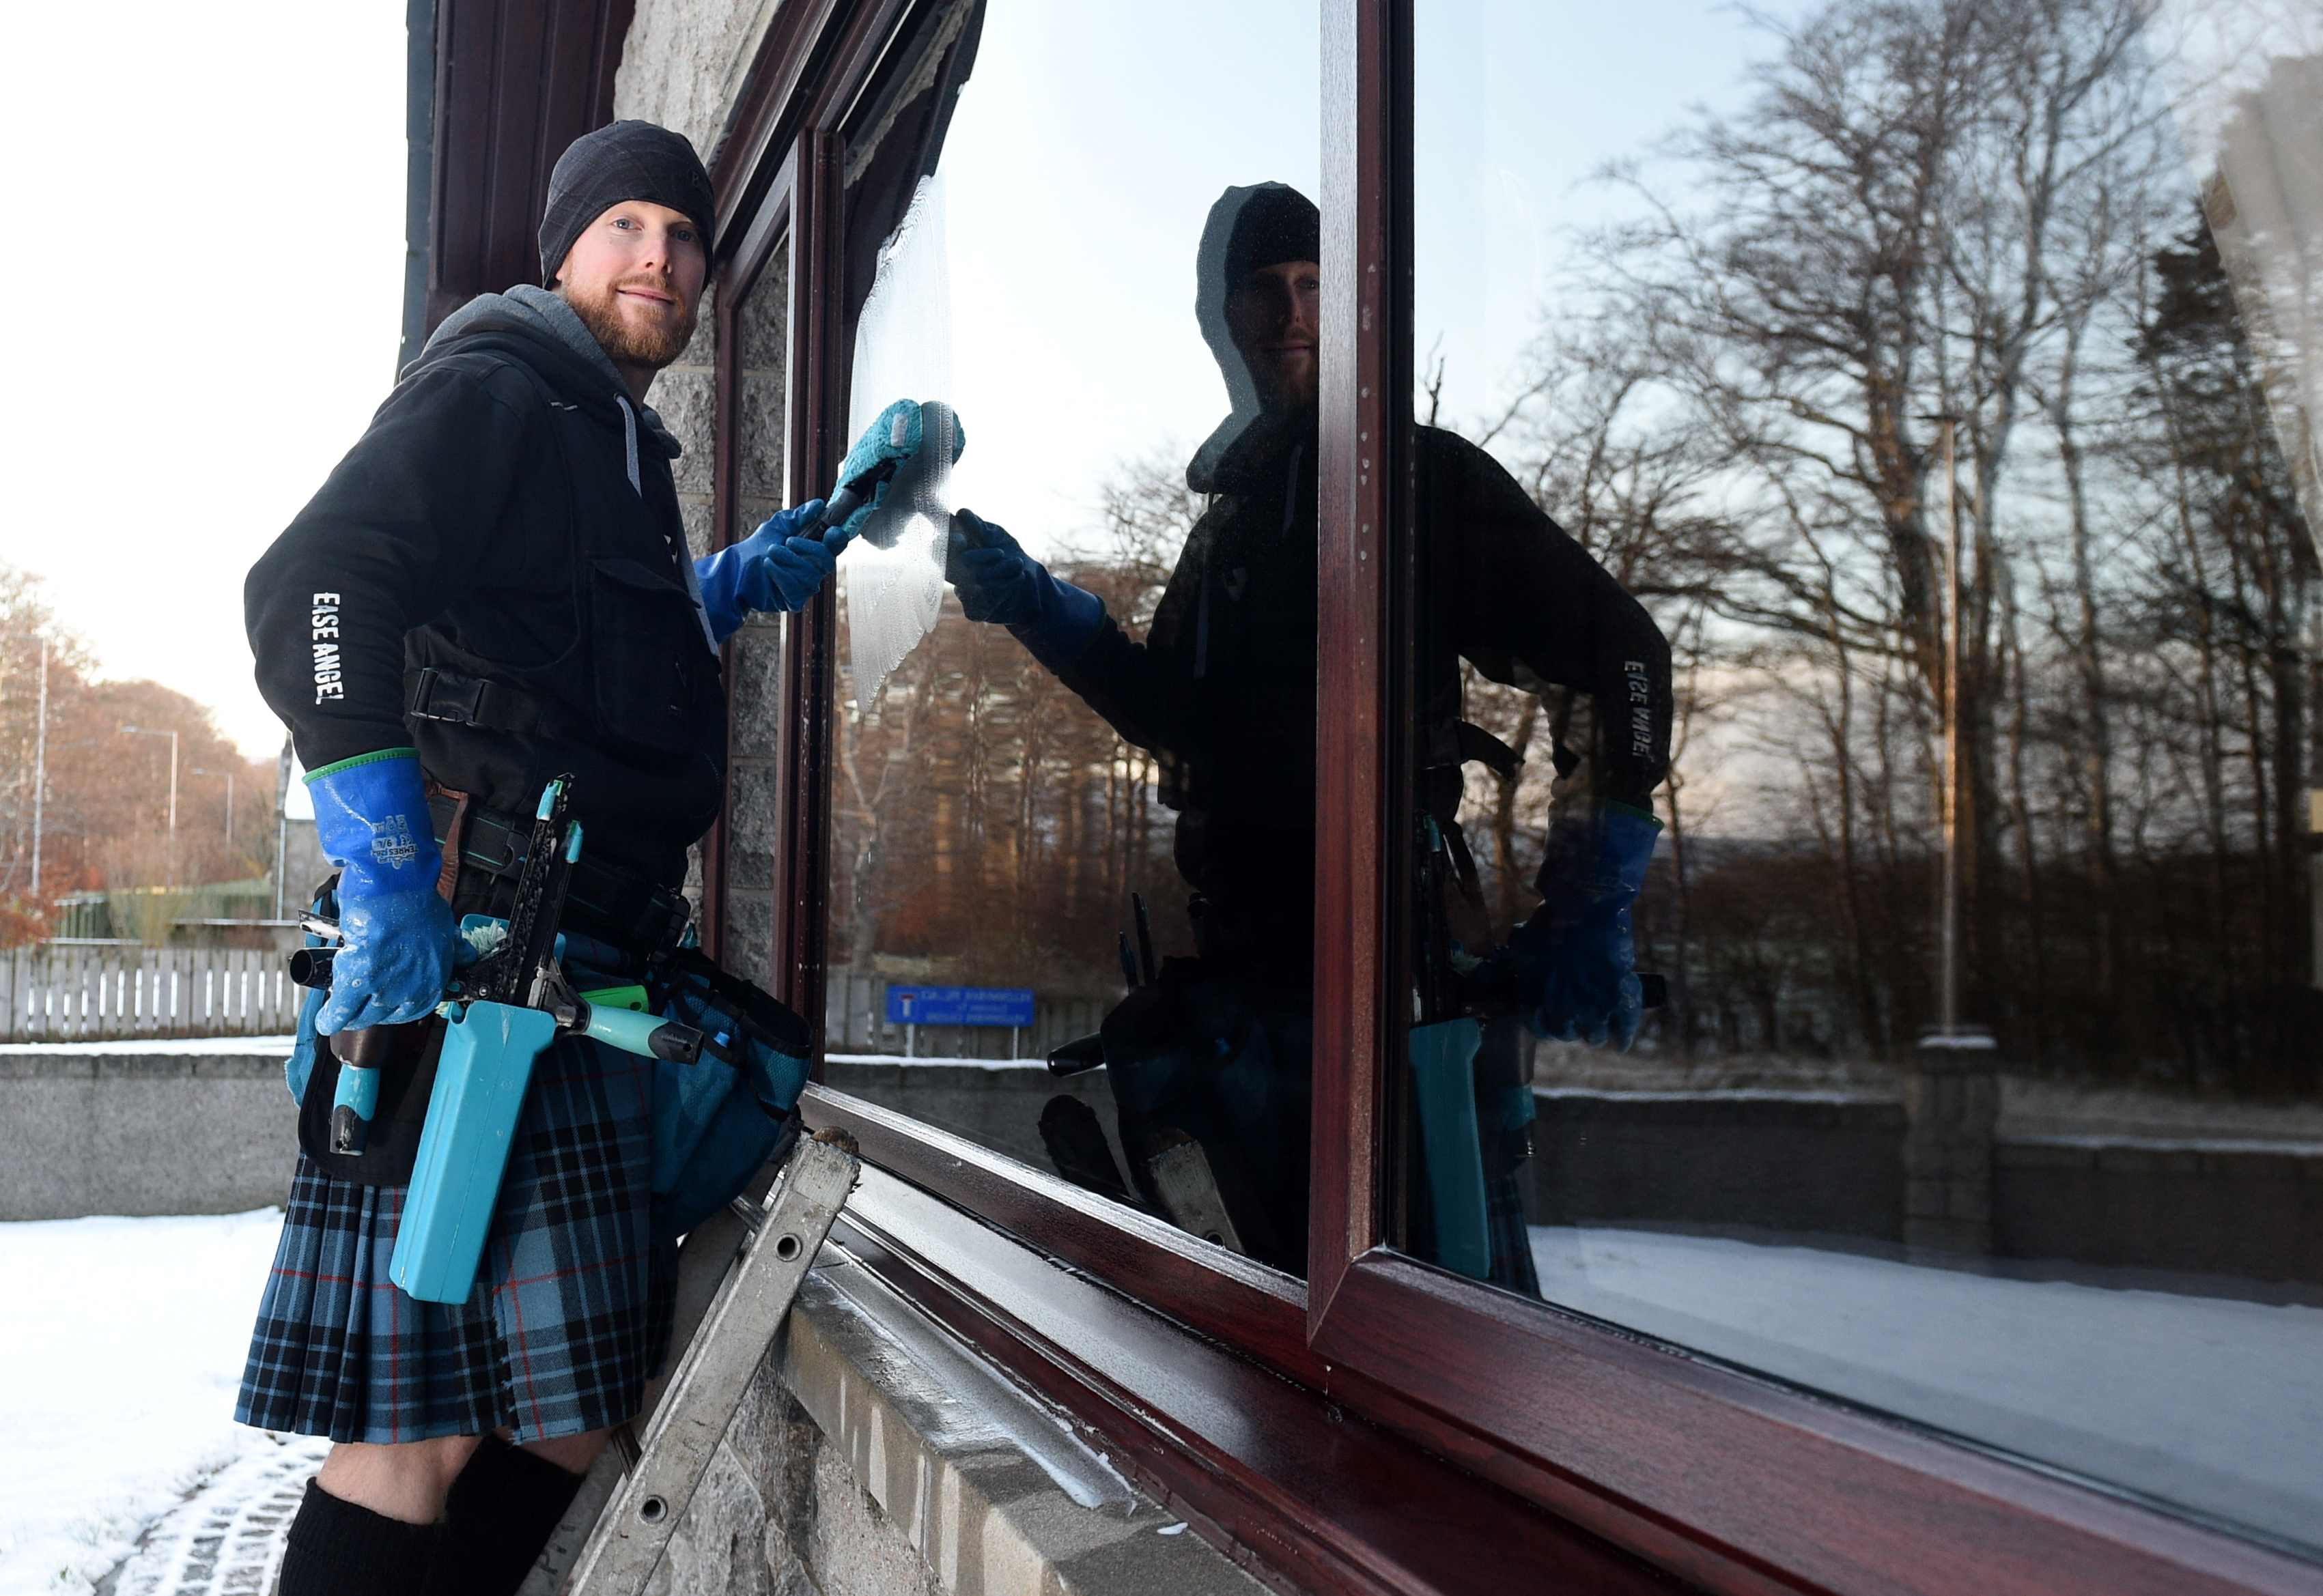 Pictured is Peter McKay washing a window. Peter is a window cleaner and has been wearing a kilt for the best part of a year to raise money for disabled friend and a spinal charity. Pictured on 17/01/2019 Picture by Darrell Benns